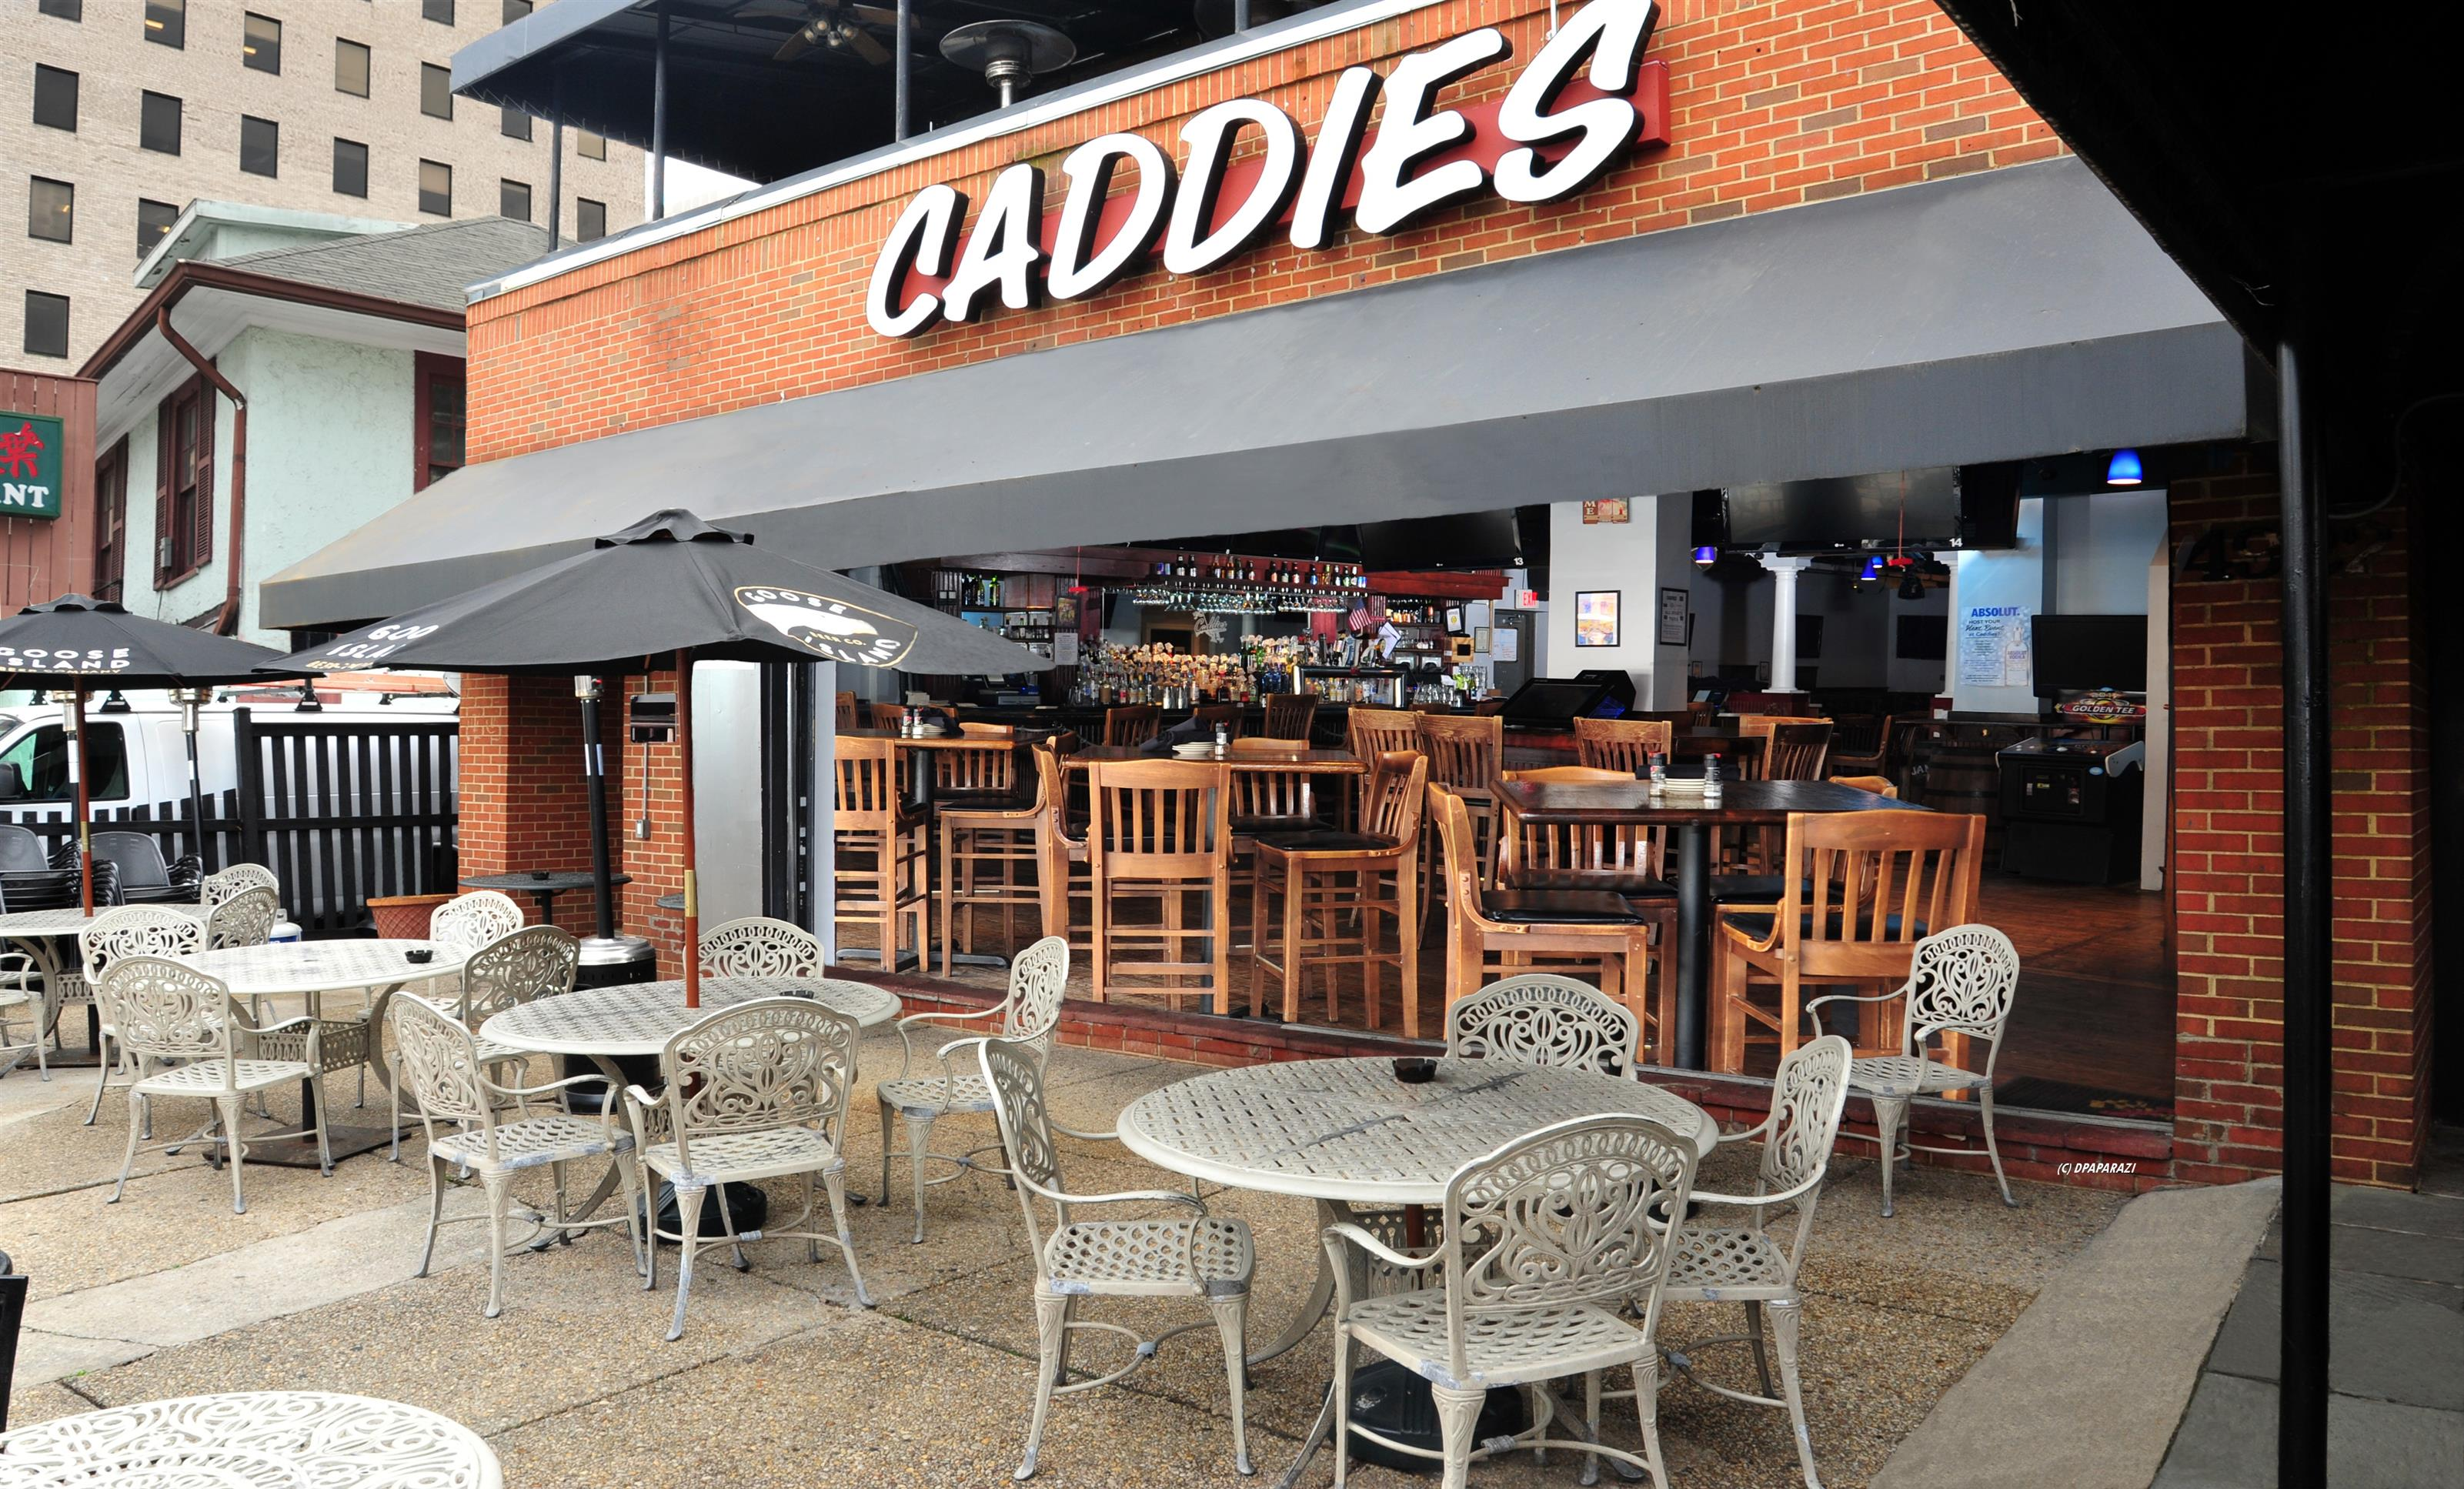 outdoor patio with tables and chairs with an open side to caddies